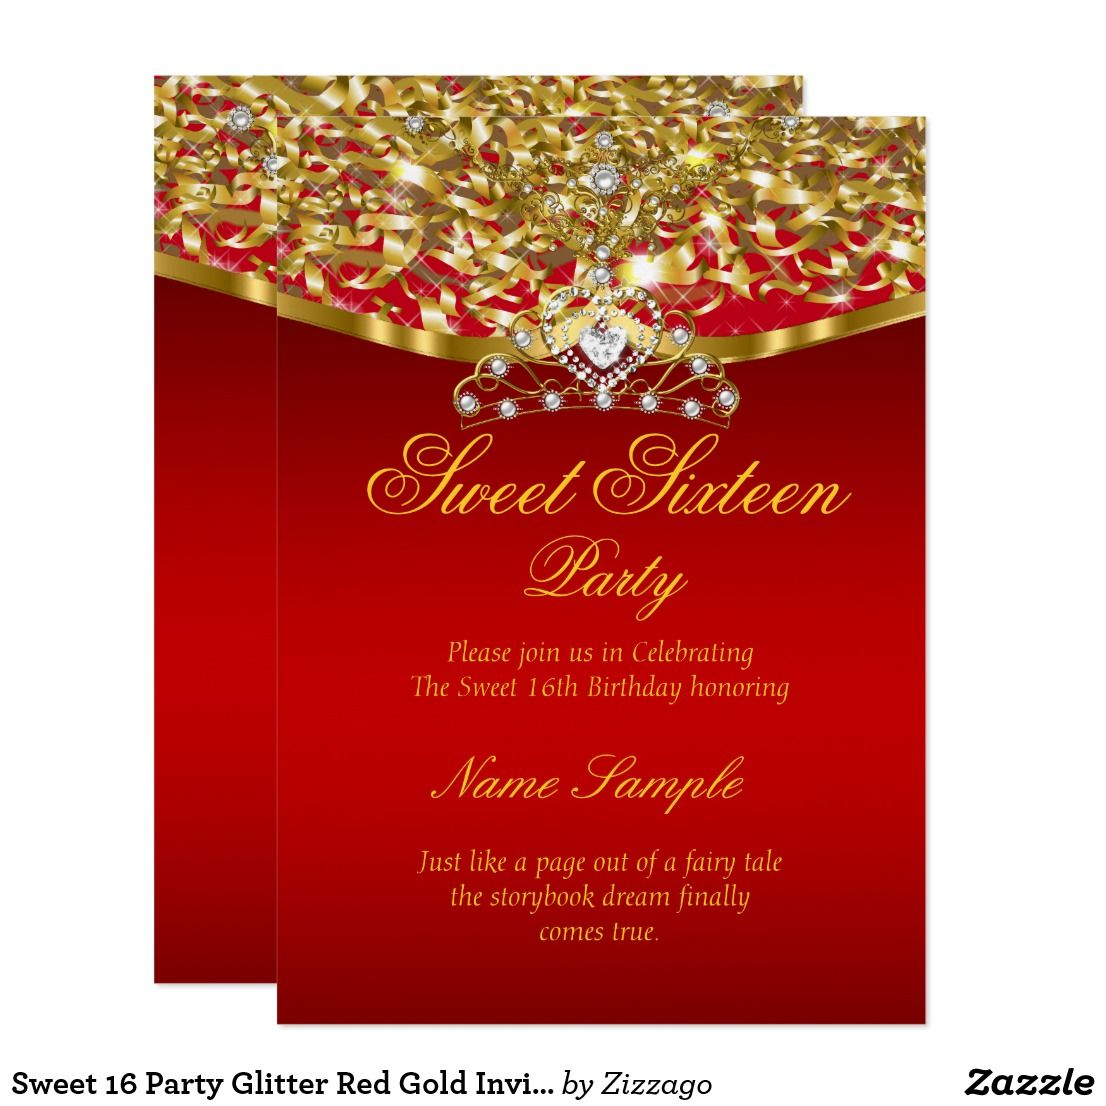 Sweet 16 Party Glitter Red Gold Invitation | Pinterest | Gold ...